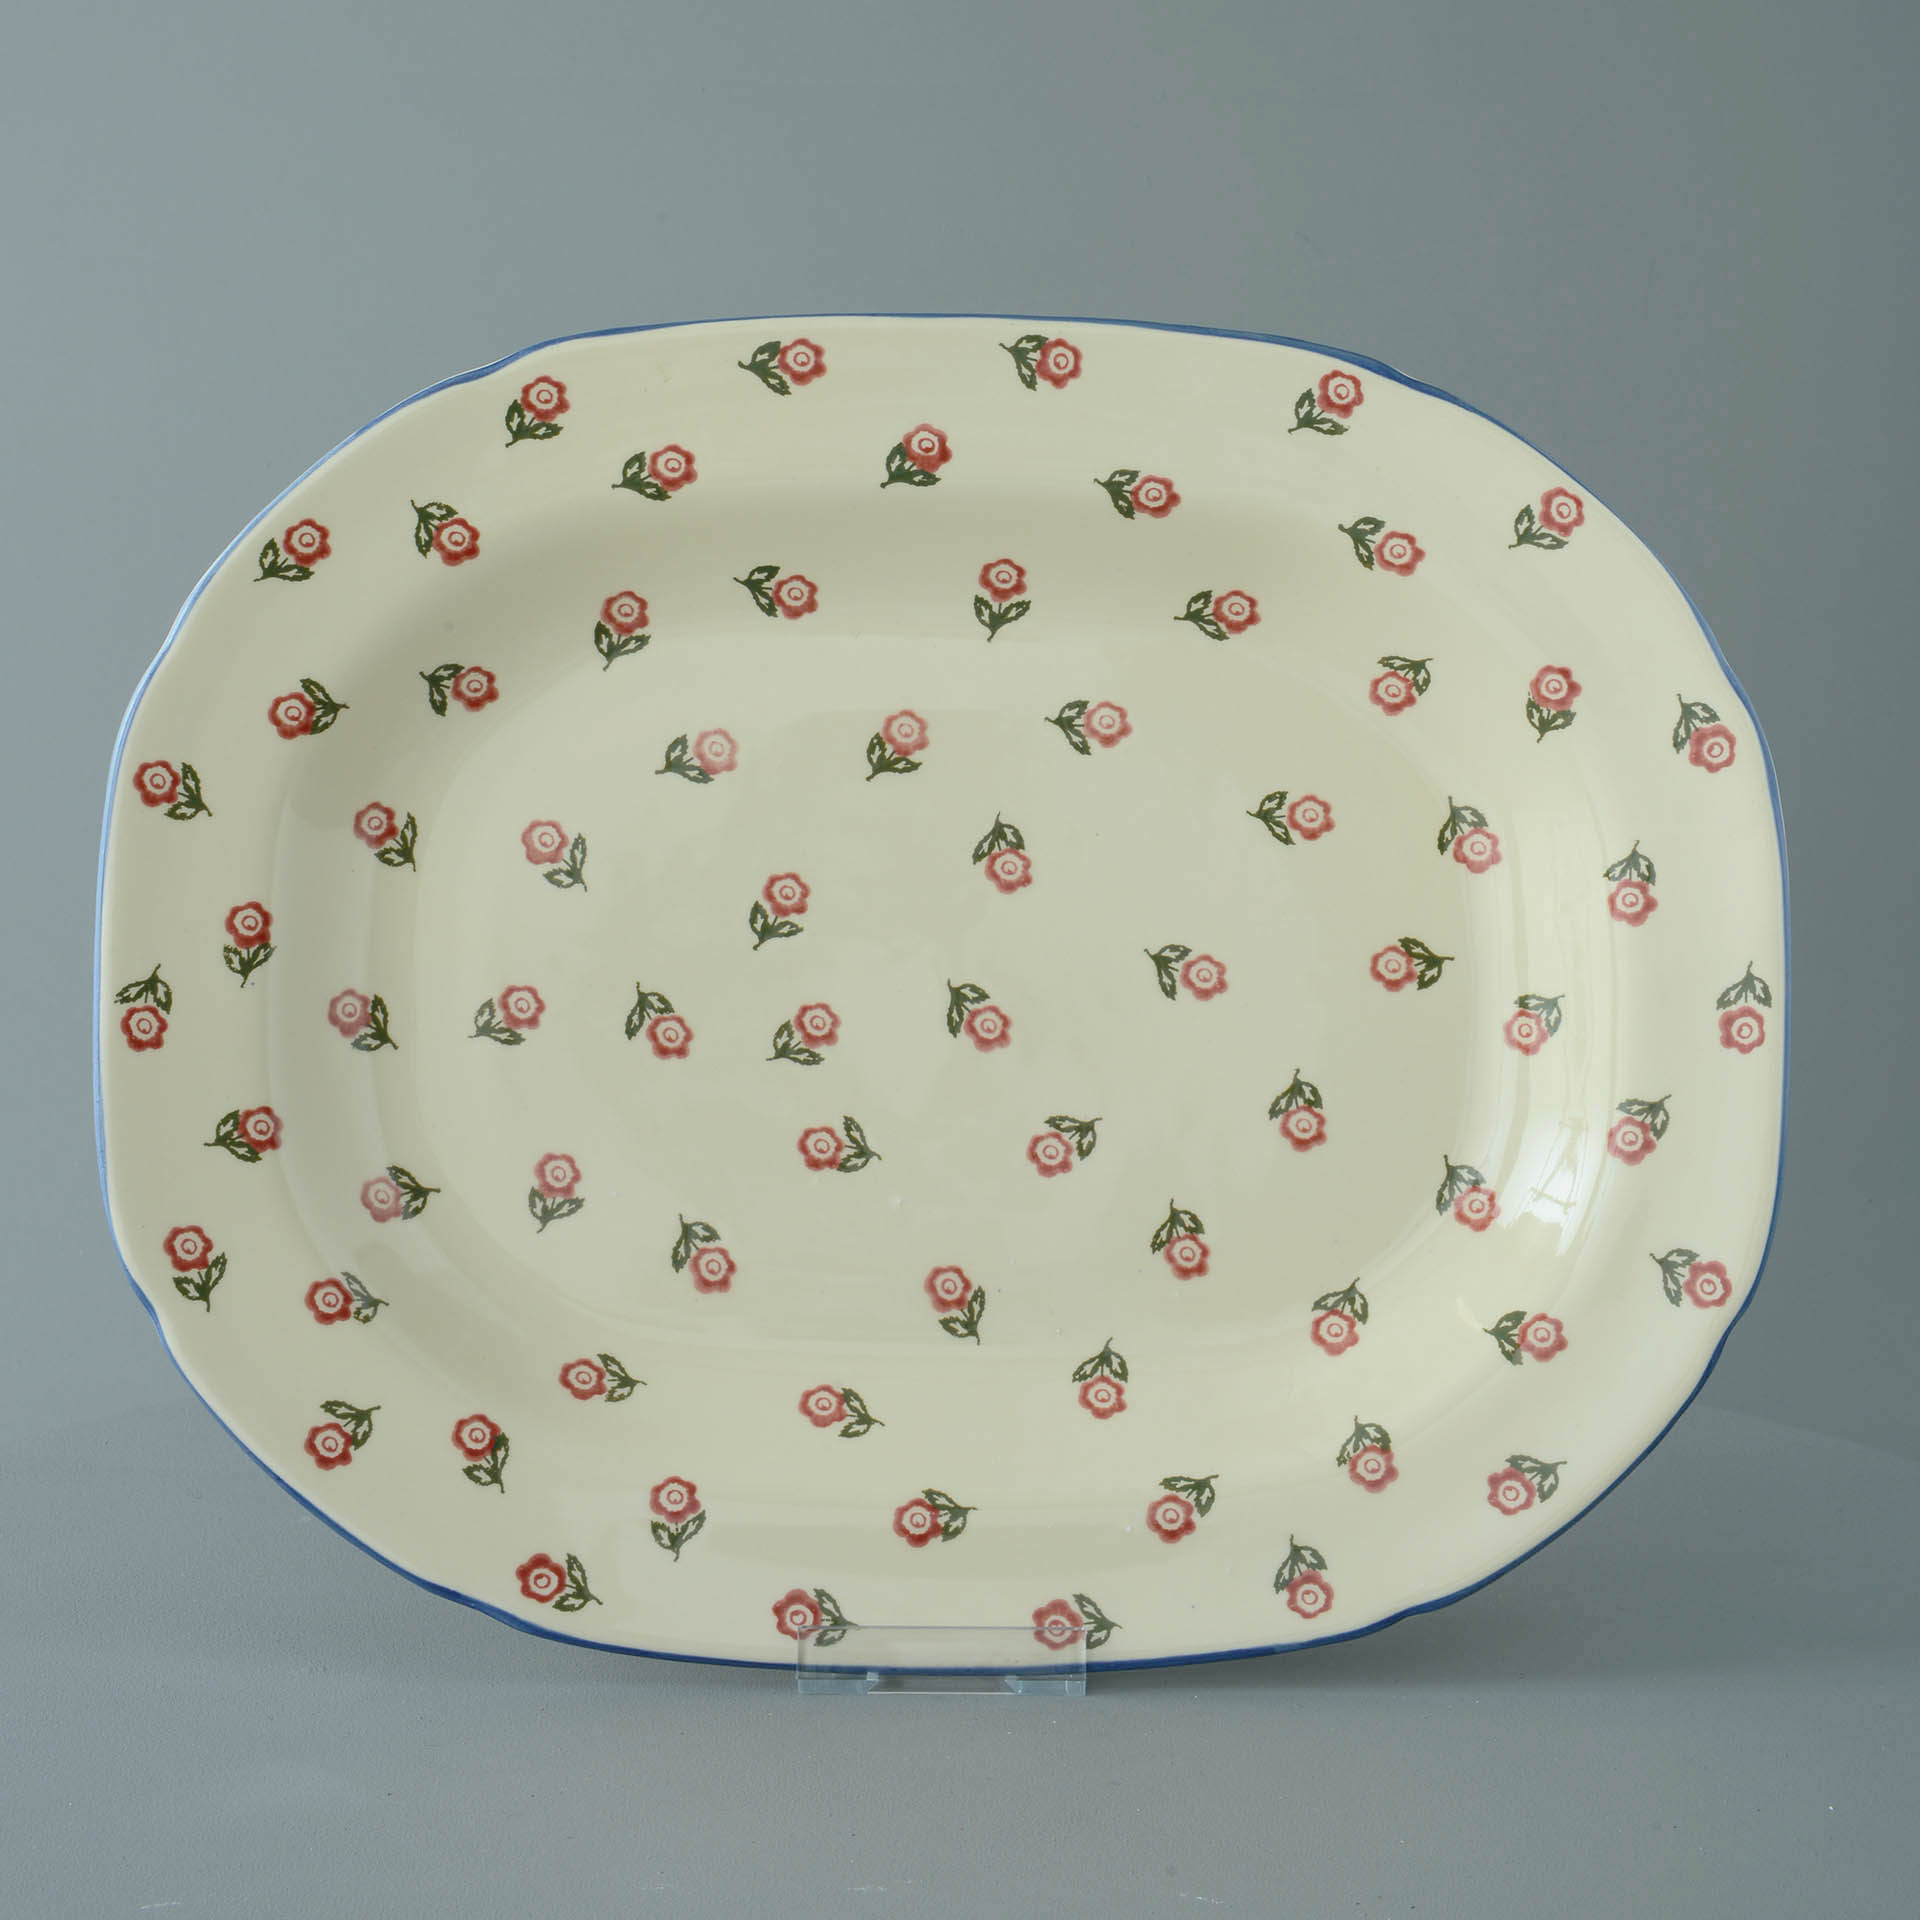 Scattered Rose Serving Plate Rectangular 45 x 35 x 4.5 cm